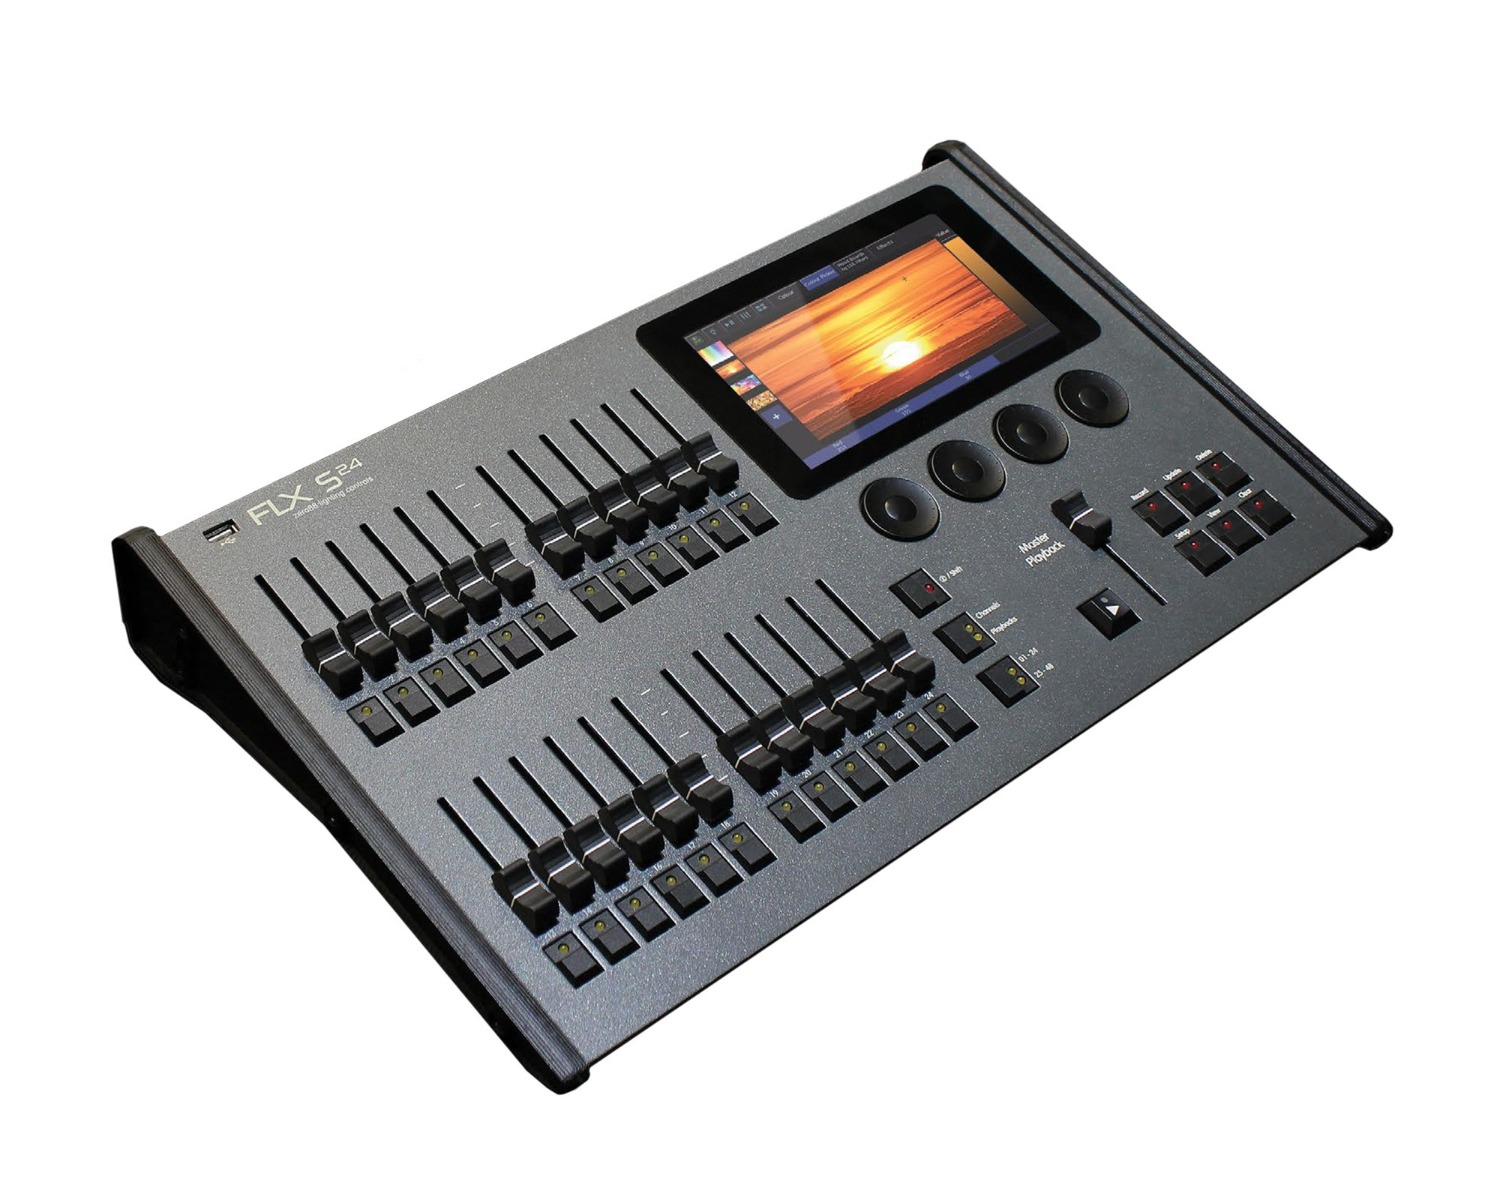 StageGear Zero 88 Lighting Desk